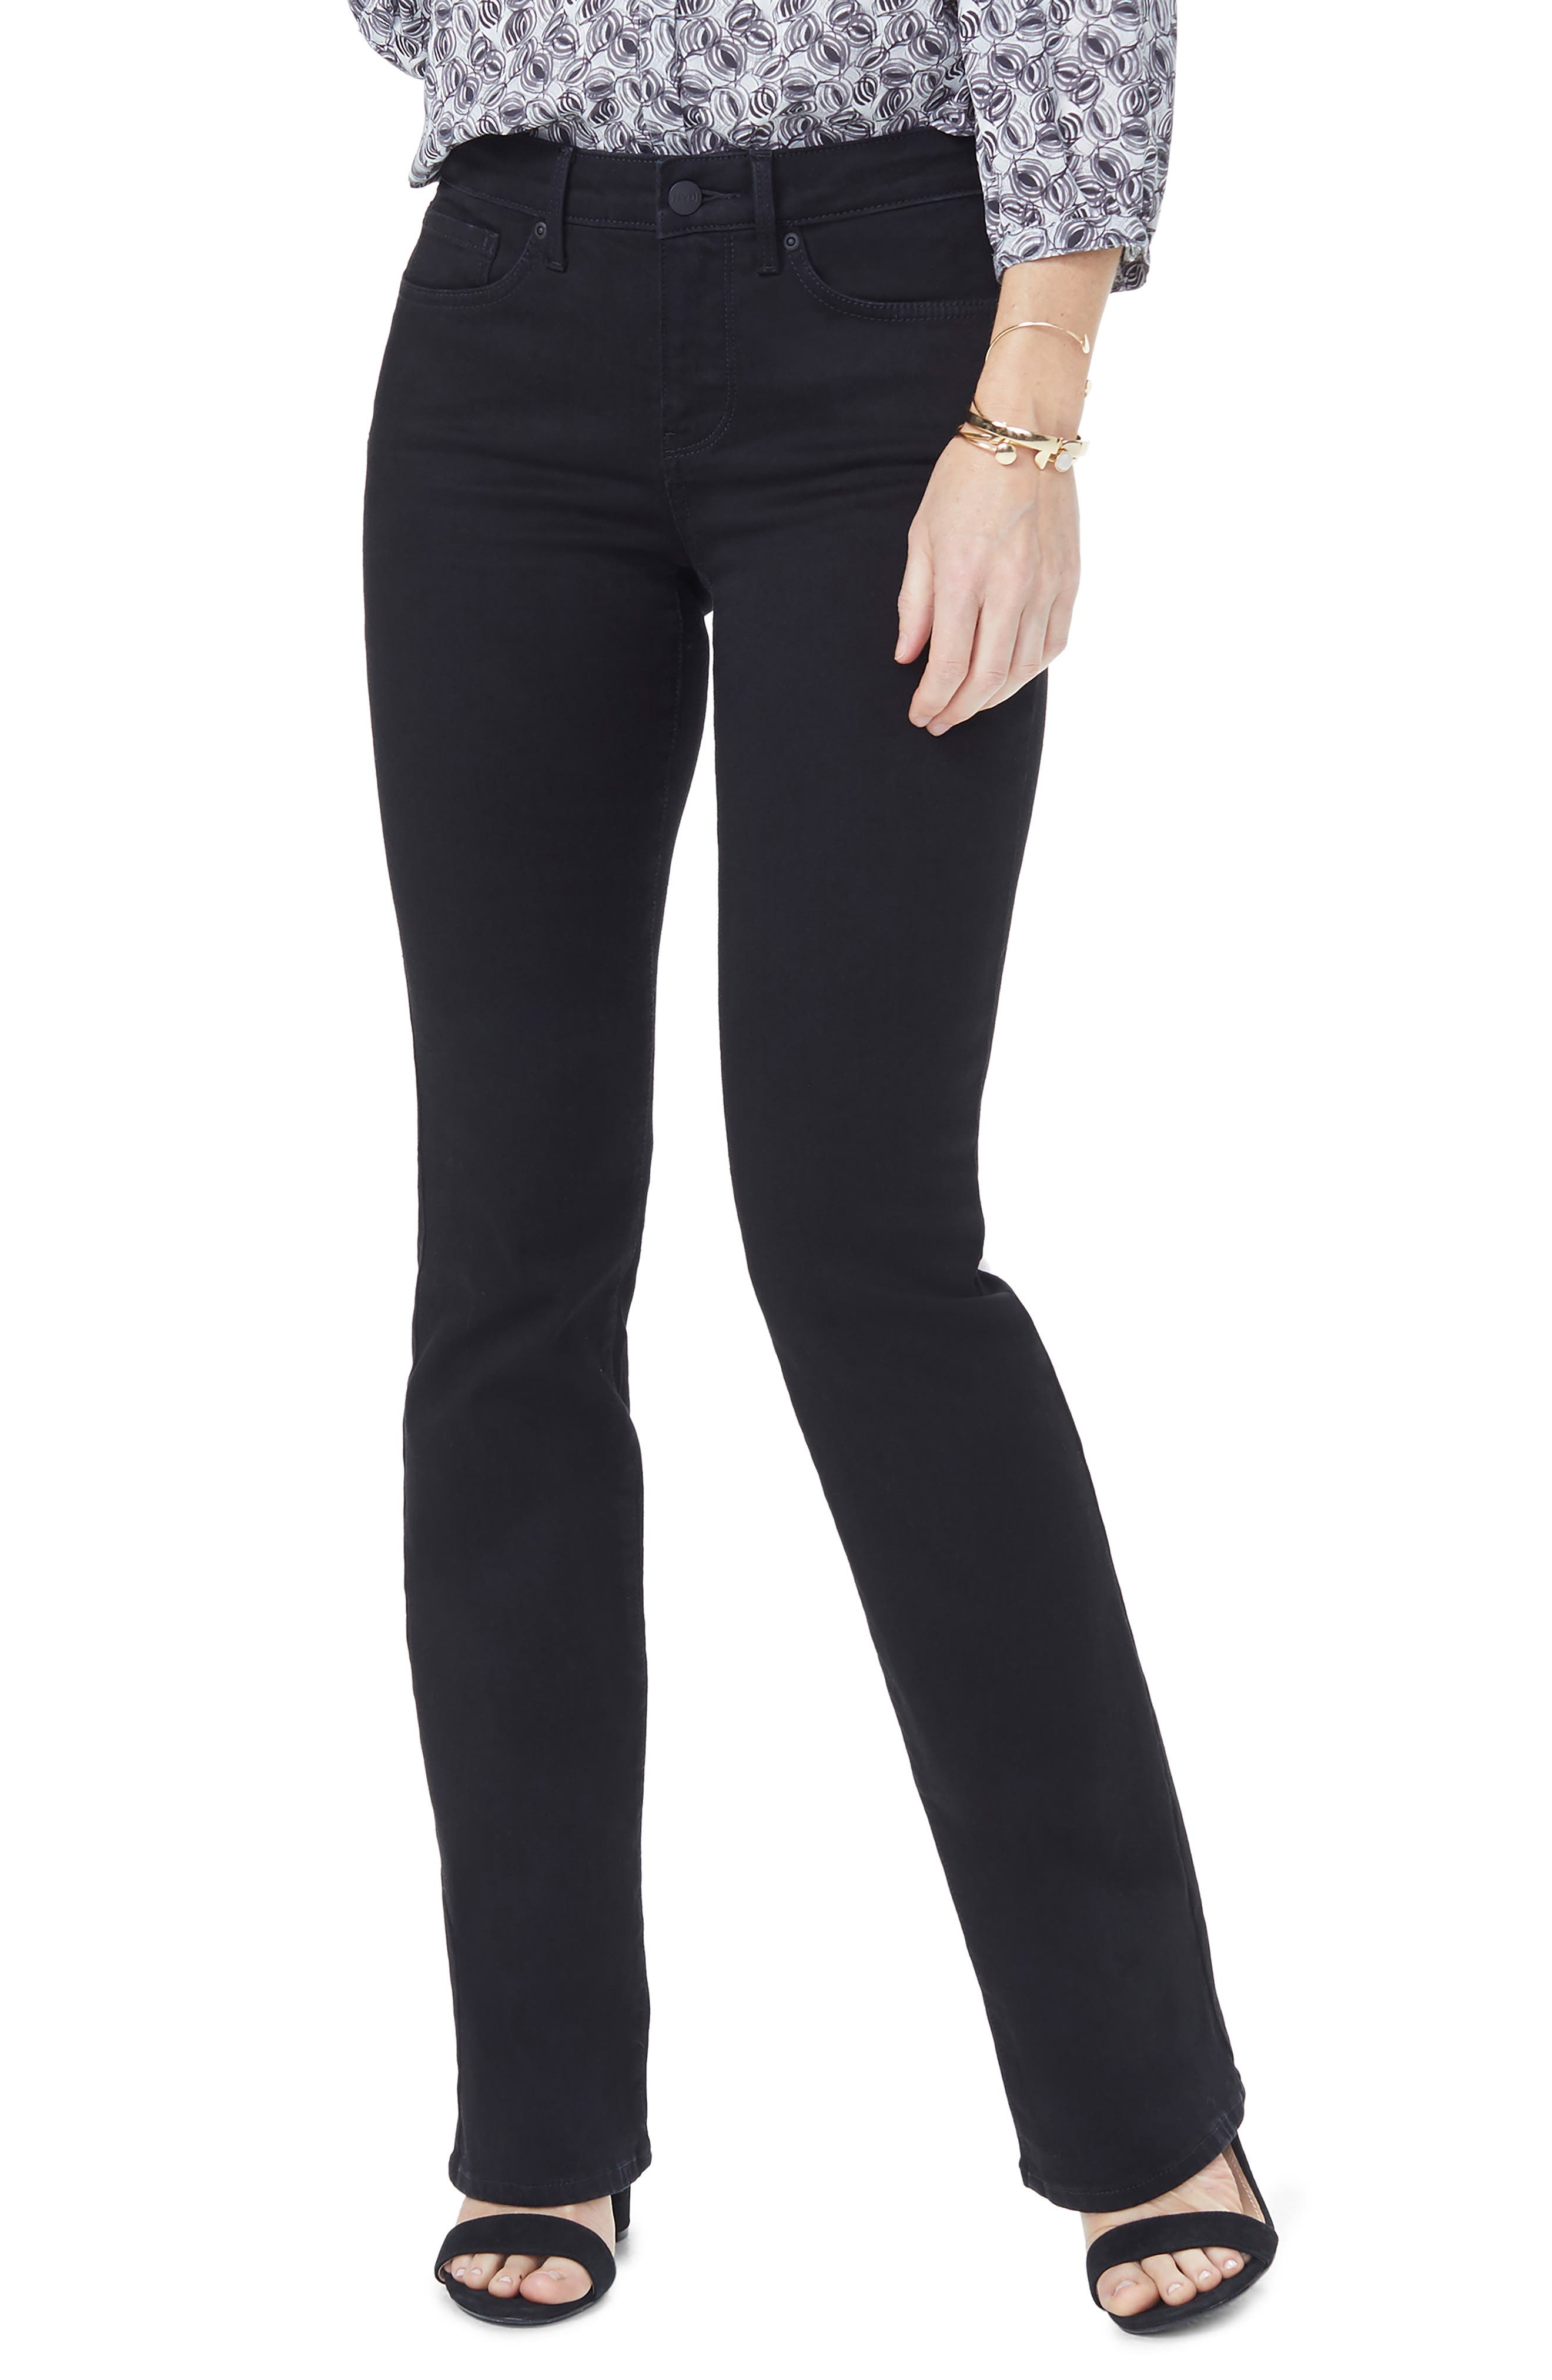 Barbara Curves 360 Bootcut Jeans in Black